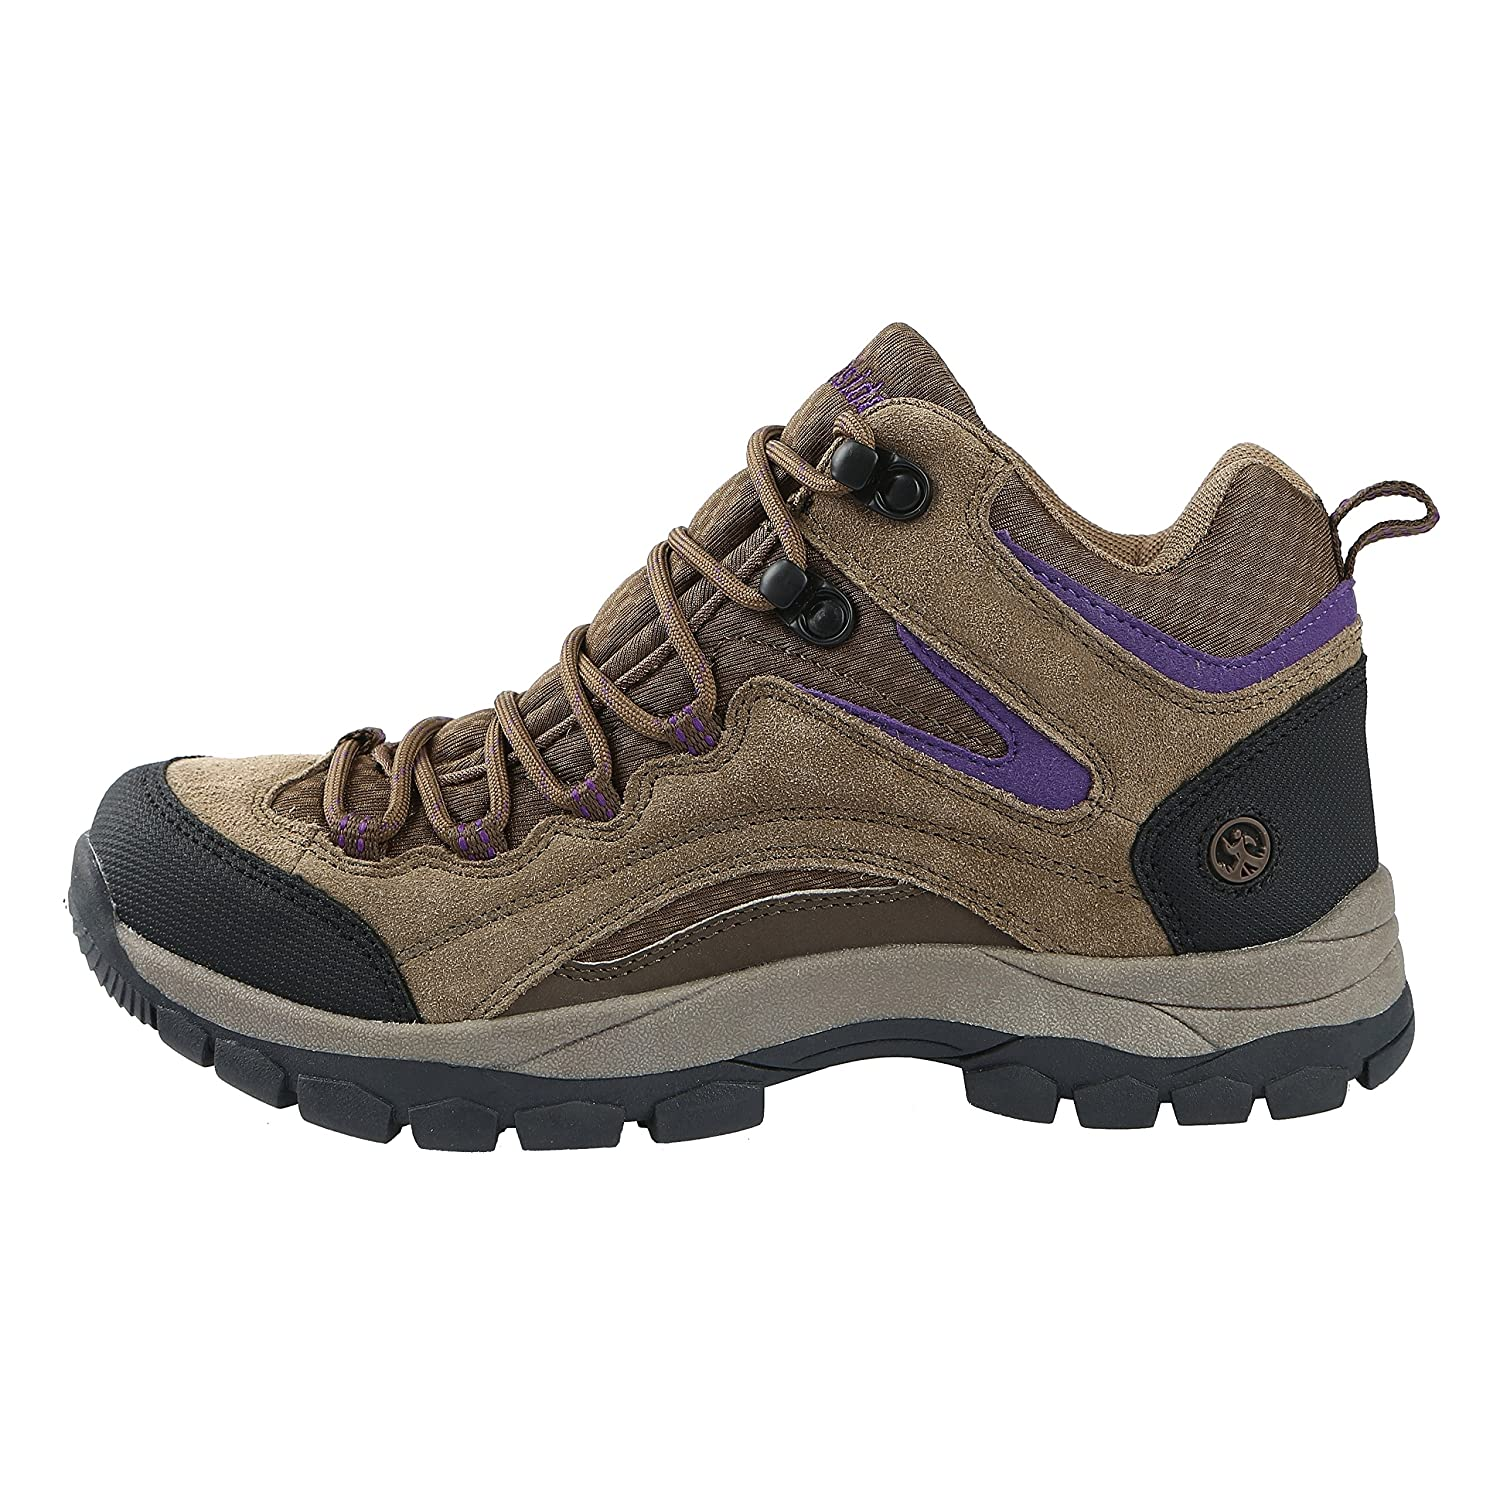 Northside Womens Pioneer Mid Rise Leather Hiking Boot B00I5G35JO 7 B(M) US|Medium Brown/Dark Purple